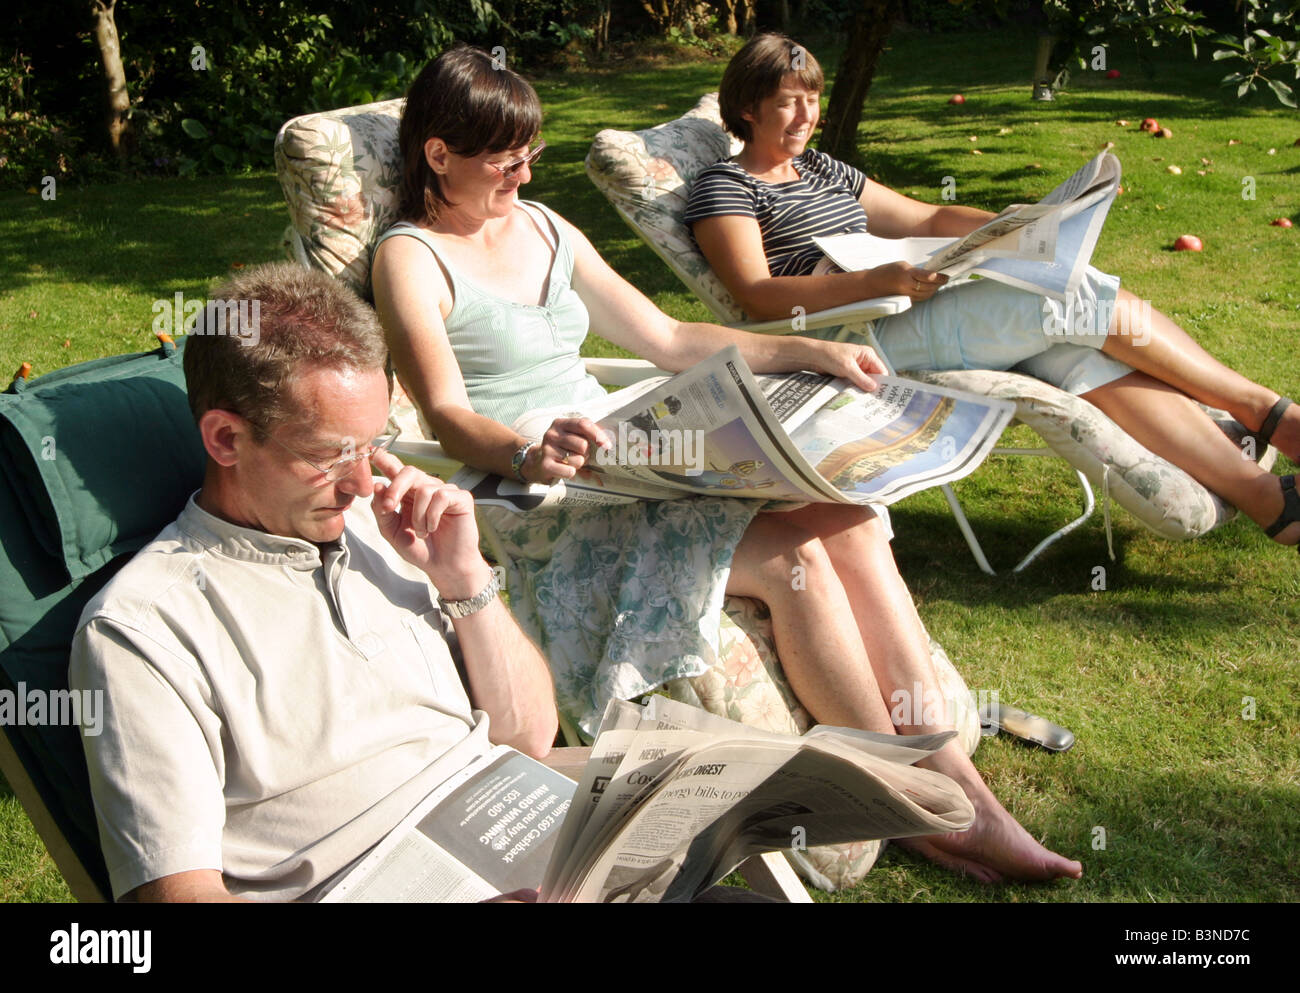 three-adults-reading-the-saturday-papers-in-the-garden-newmarket-suffolk-B3ND7C.jpg